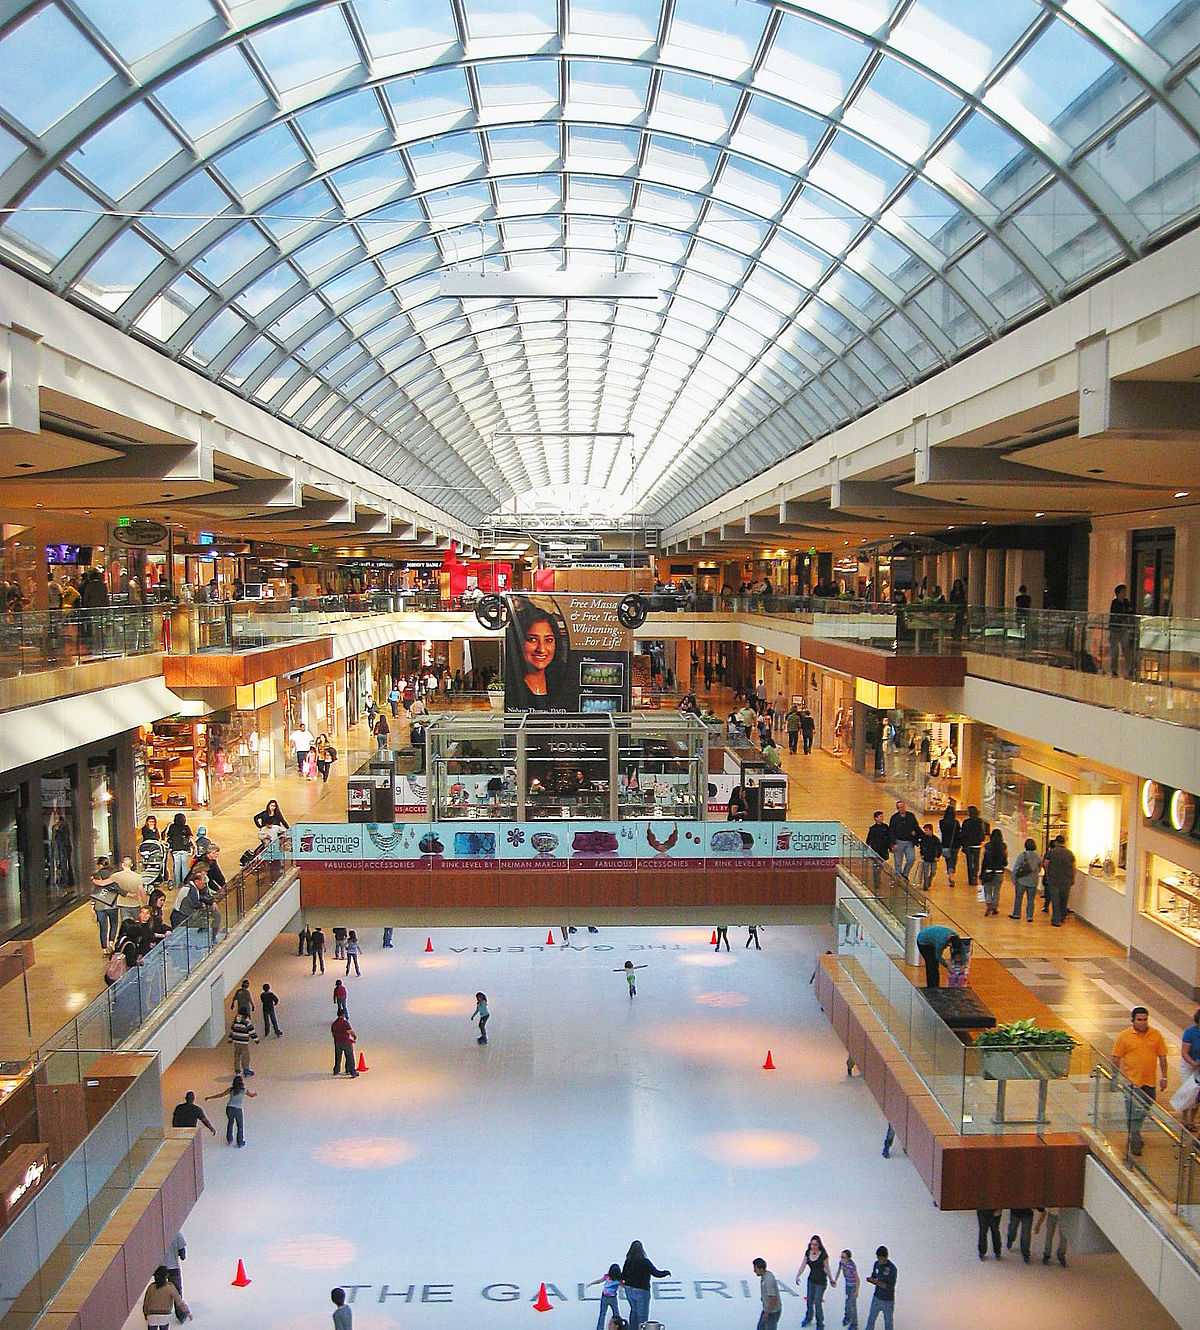 The Galleria Wikipedia - Shopping malls america changed since 1989